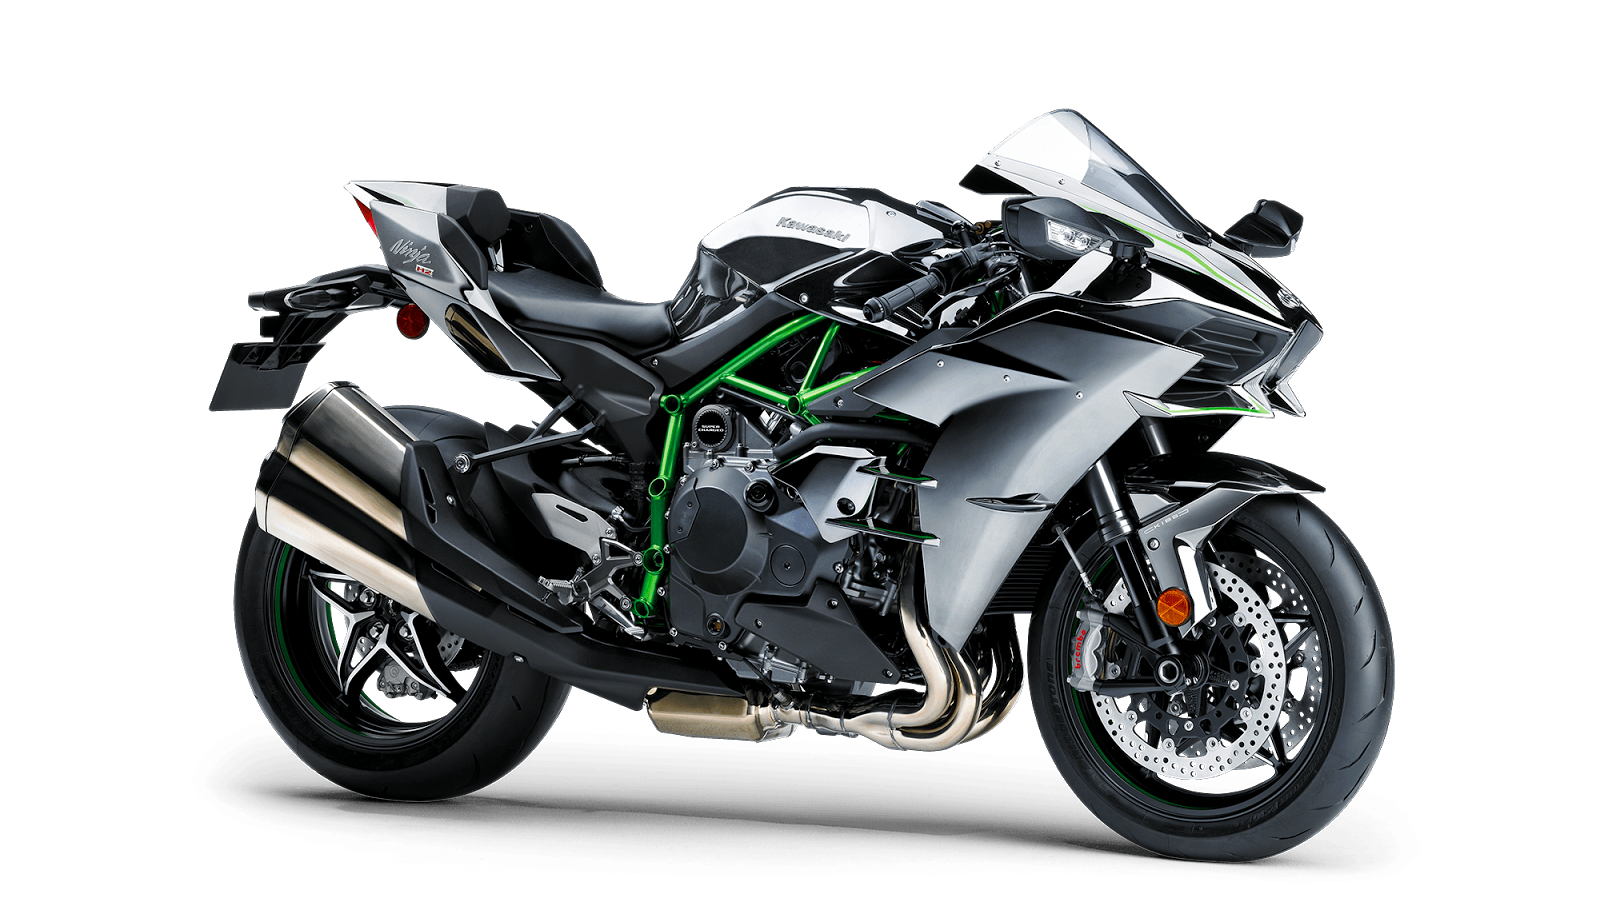 Kawasaki Ninja H2 - Road Legal Supercharged Bike